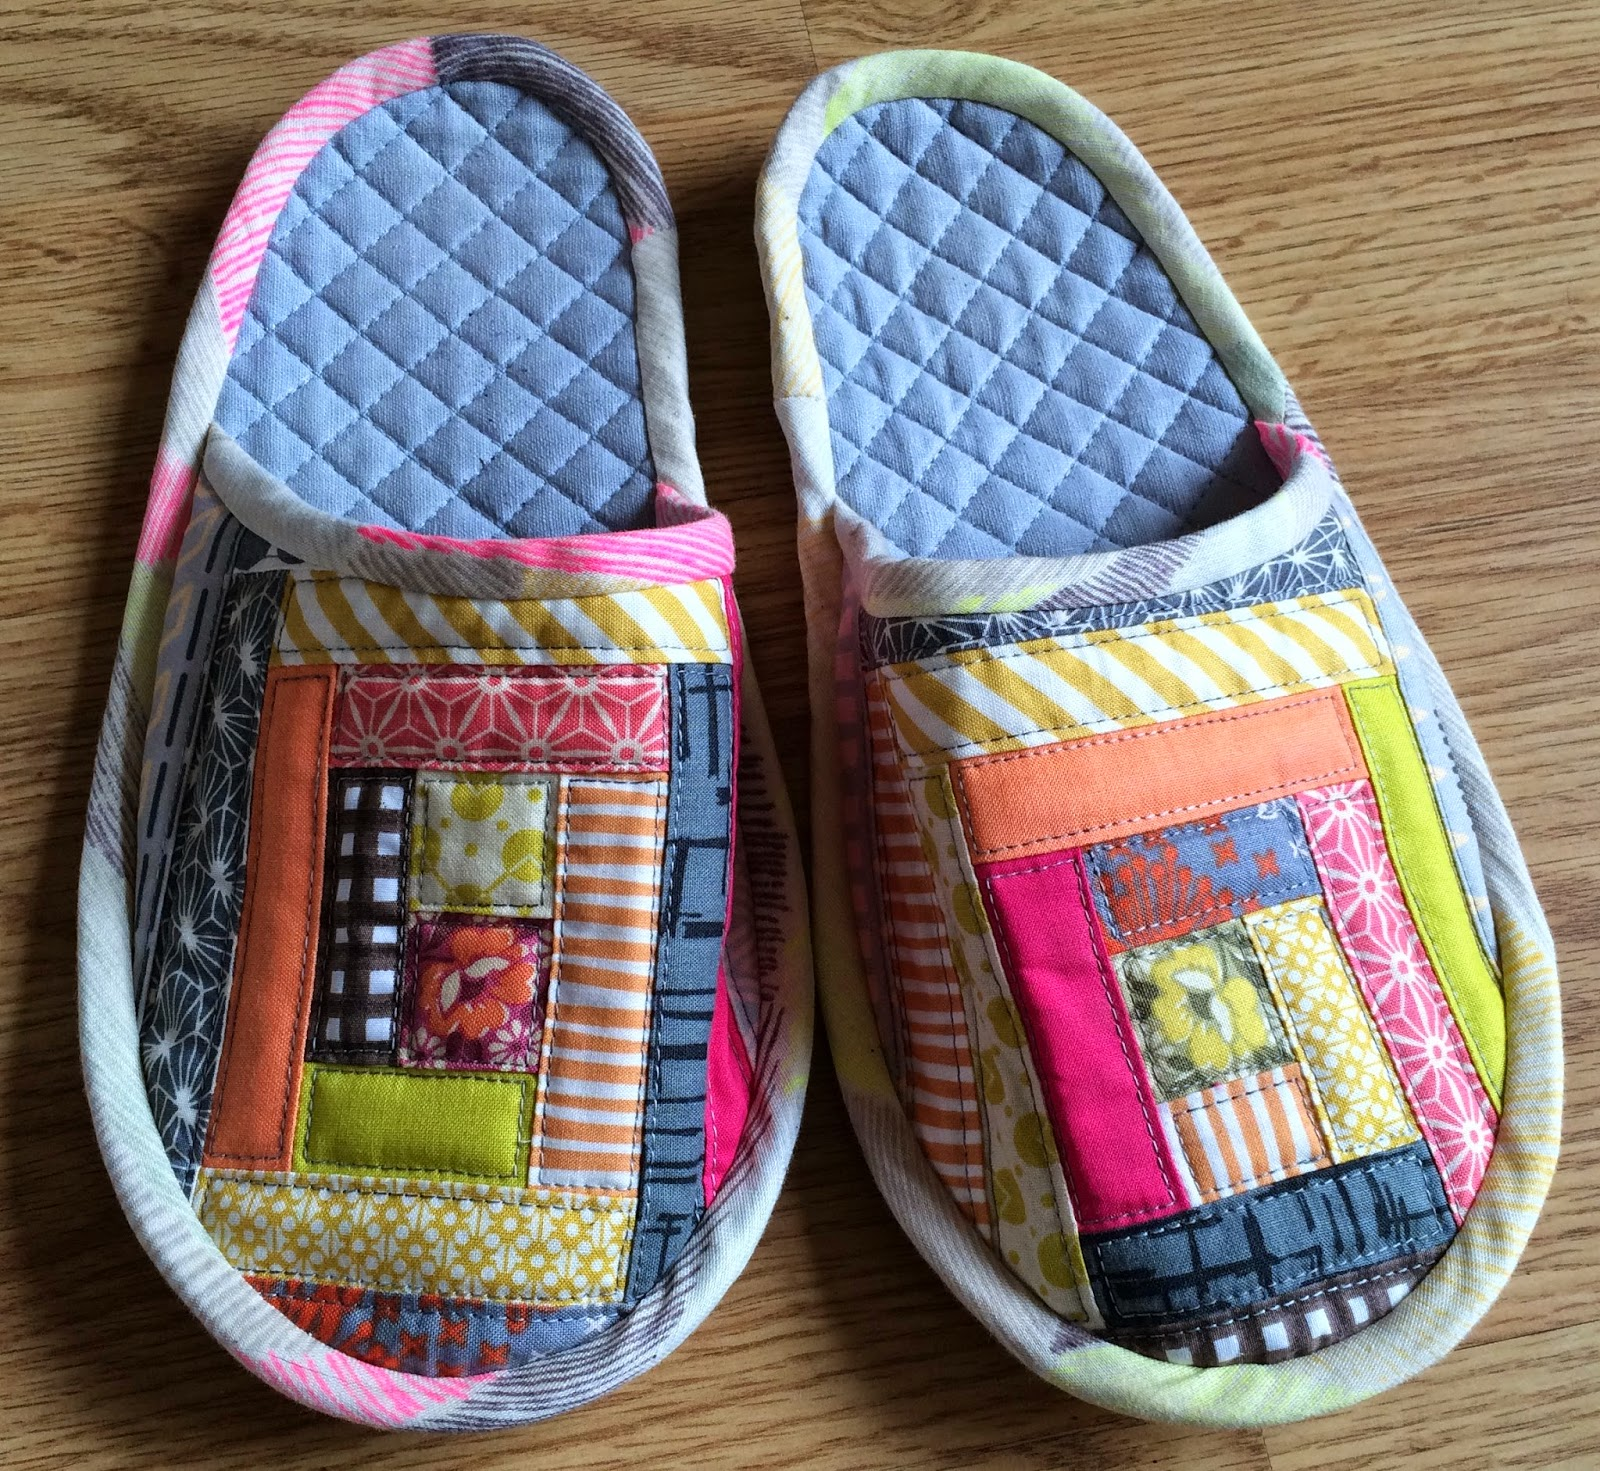 Log Cabin Slippers Cozy Toes Charm About You